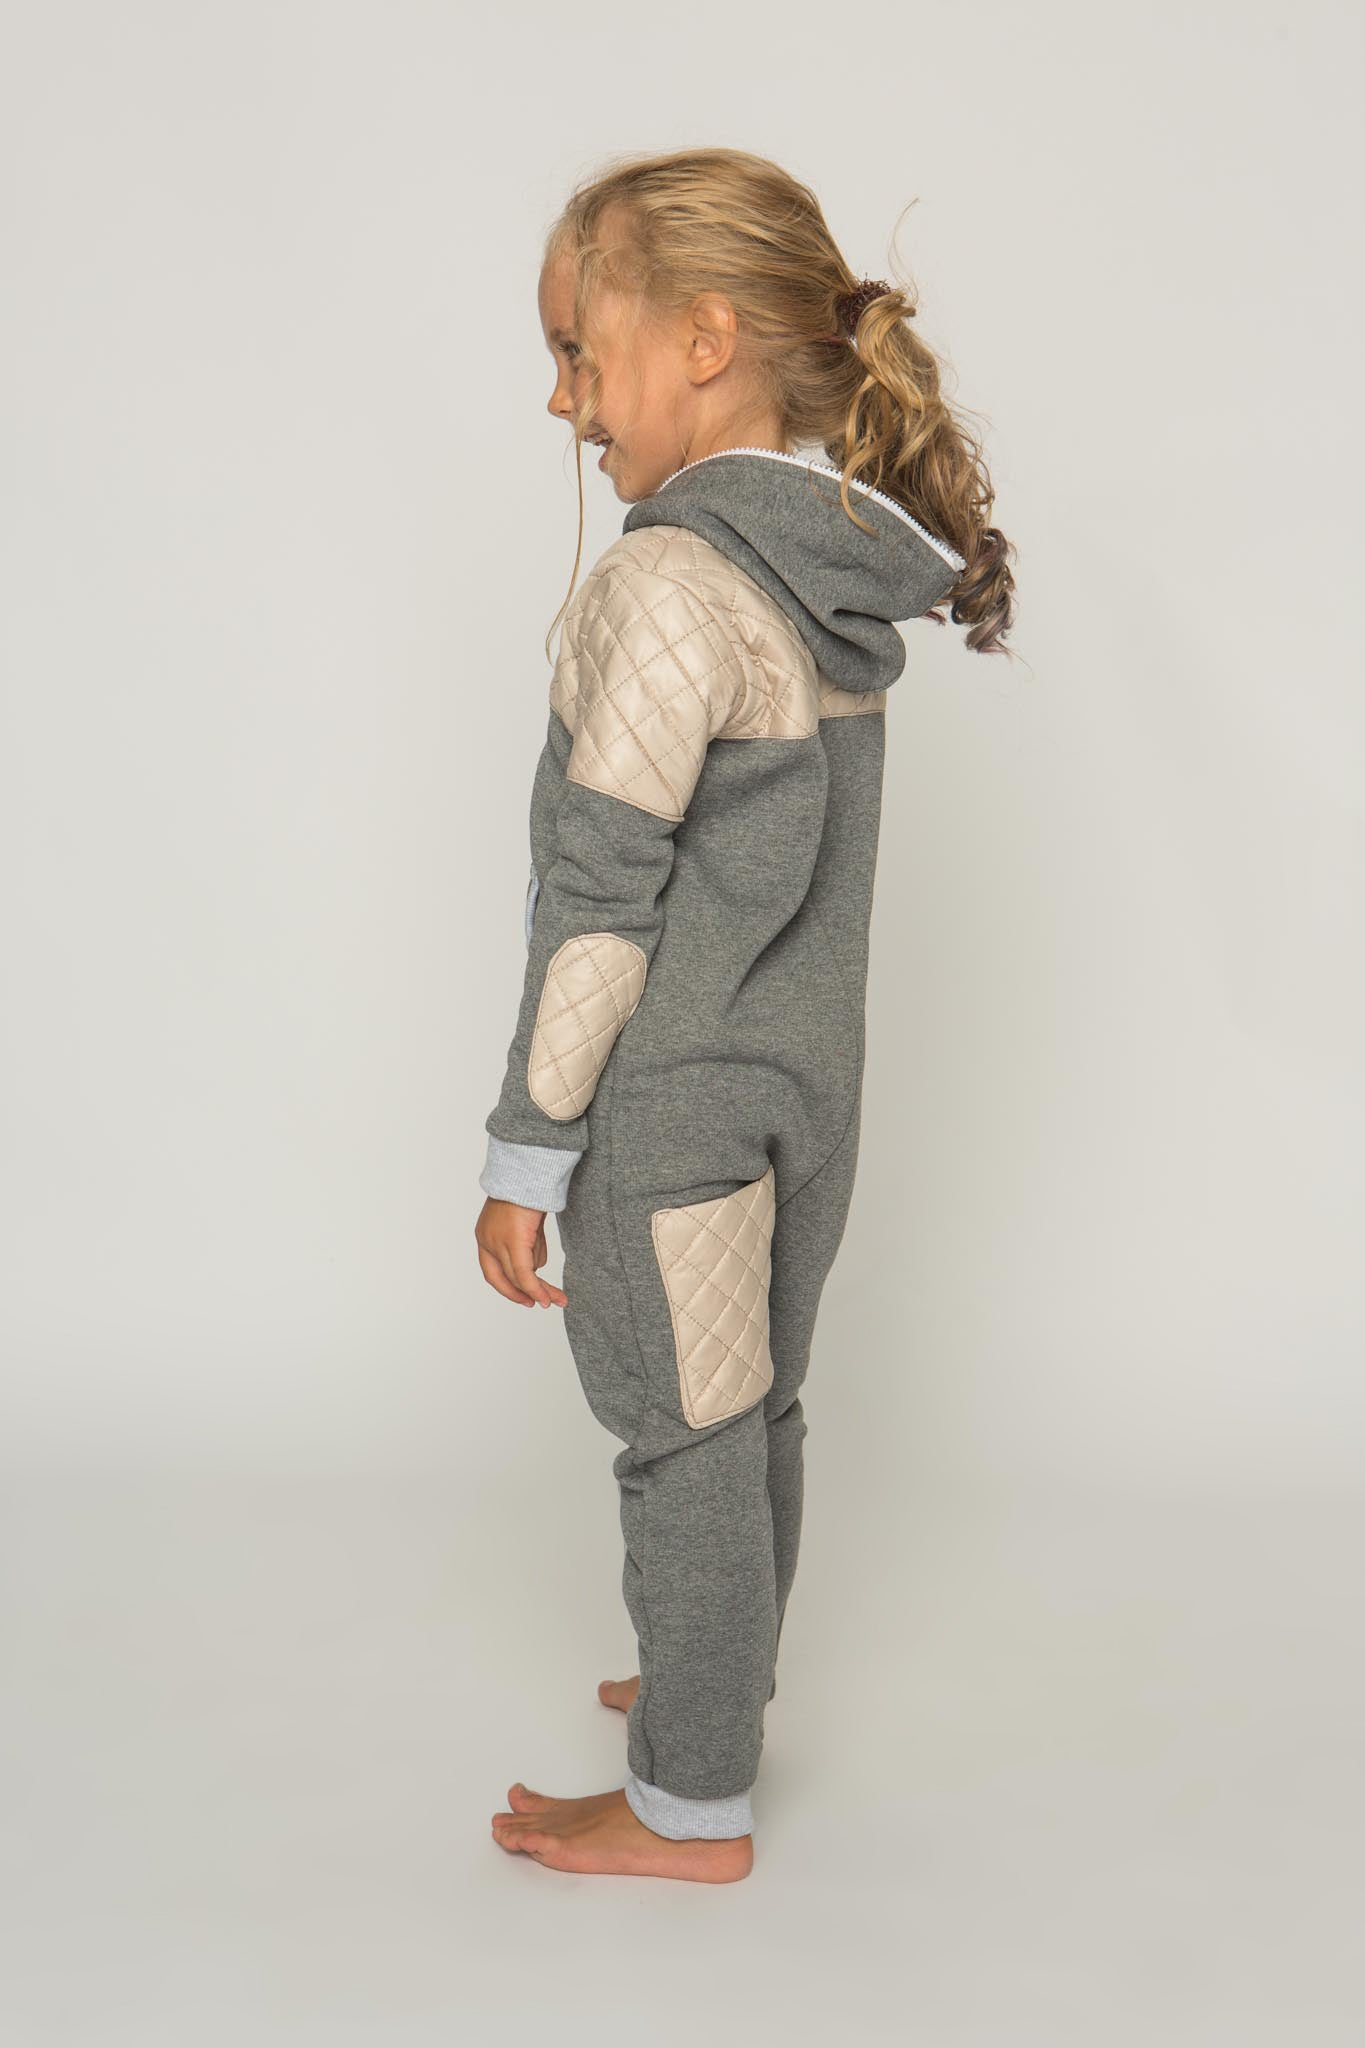 Sofa Killer grey unisex kids onesie Creamy